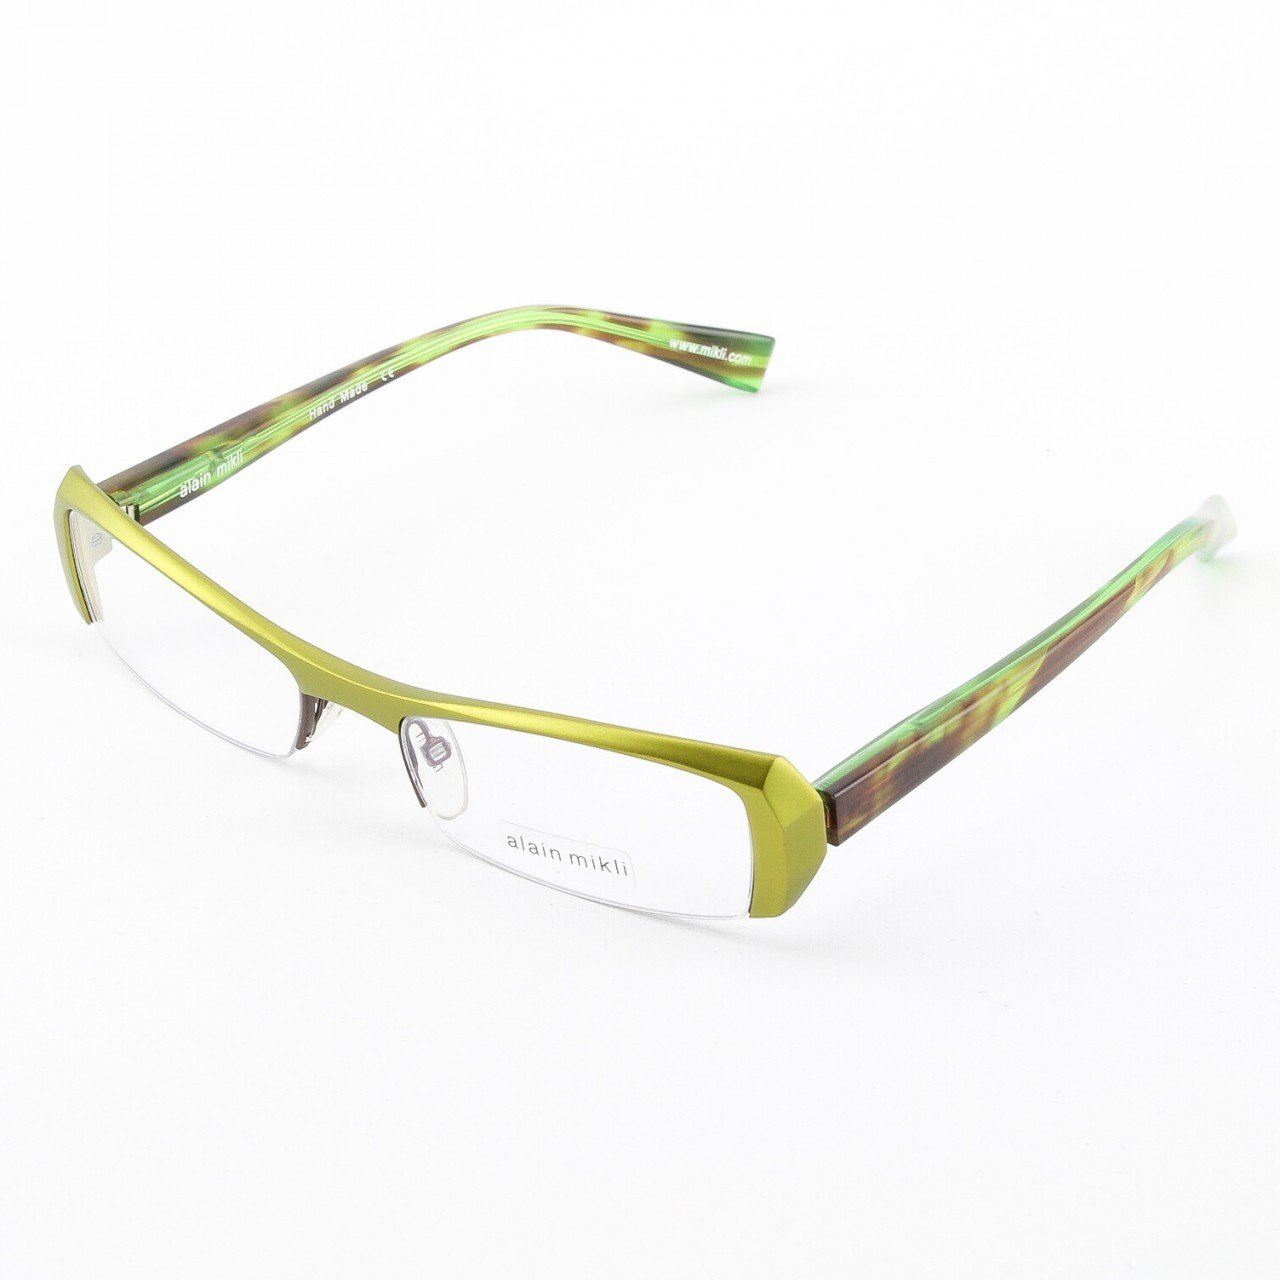 Alain Mikli Eyeglasses AL0613 Col. 16 Metallic Green Frame with Mottled Brown/Green Temples